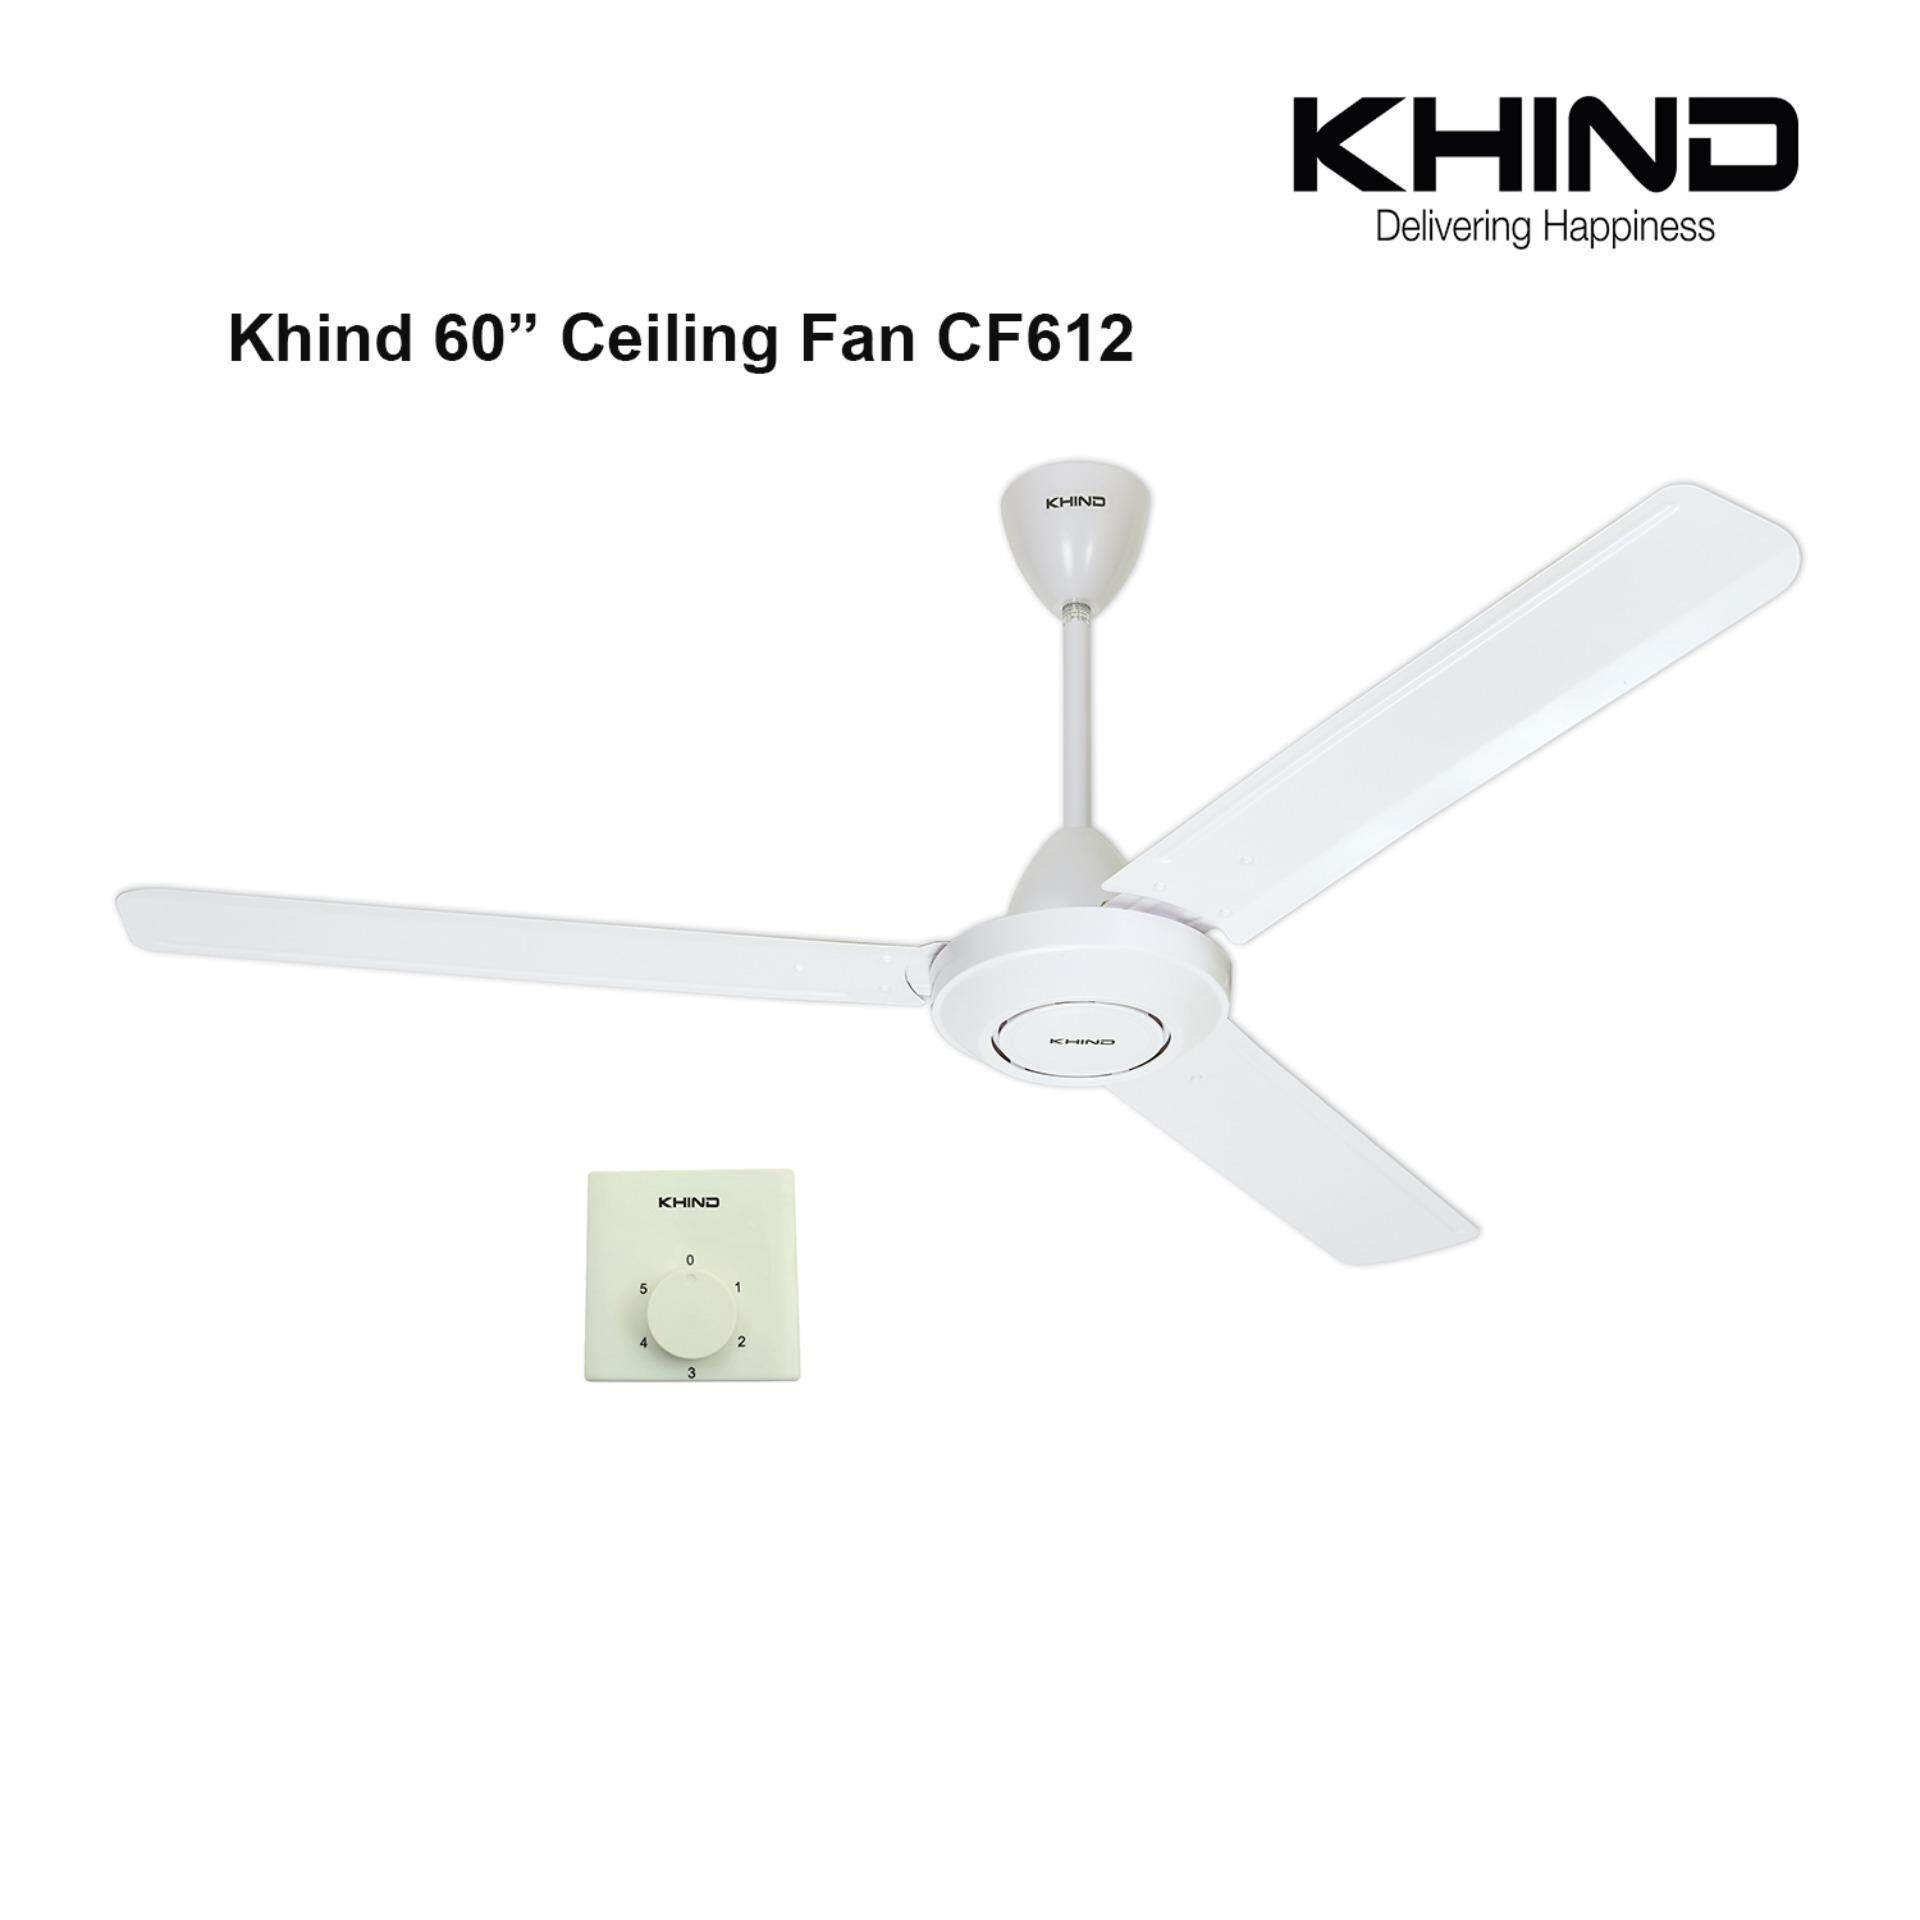 Khind 60 ceiling fan cf612 aerodynamic blade 5 speed strong silent khind 60 ceiling fan cf612 aerodynamic blade 5 speed strong silent breeze energy saving 5 star energy efficiency with speed regulator aloadofball